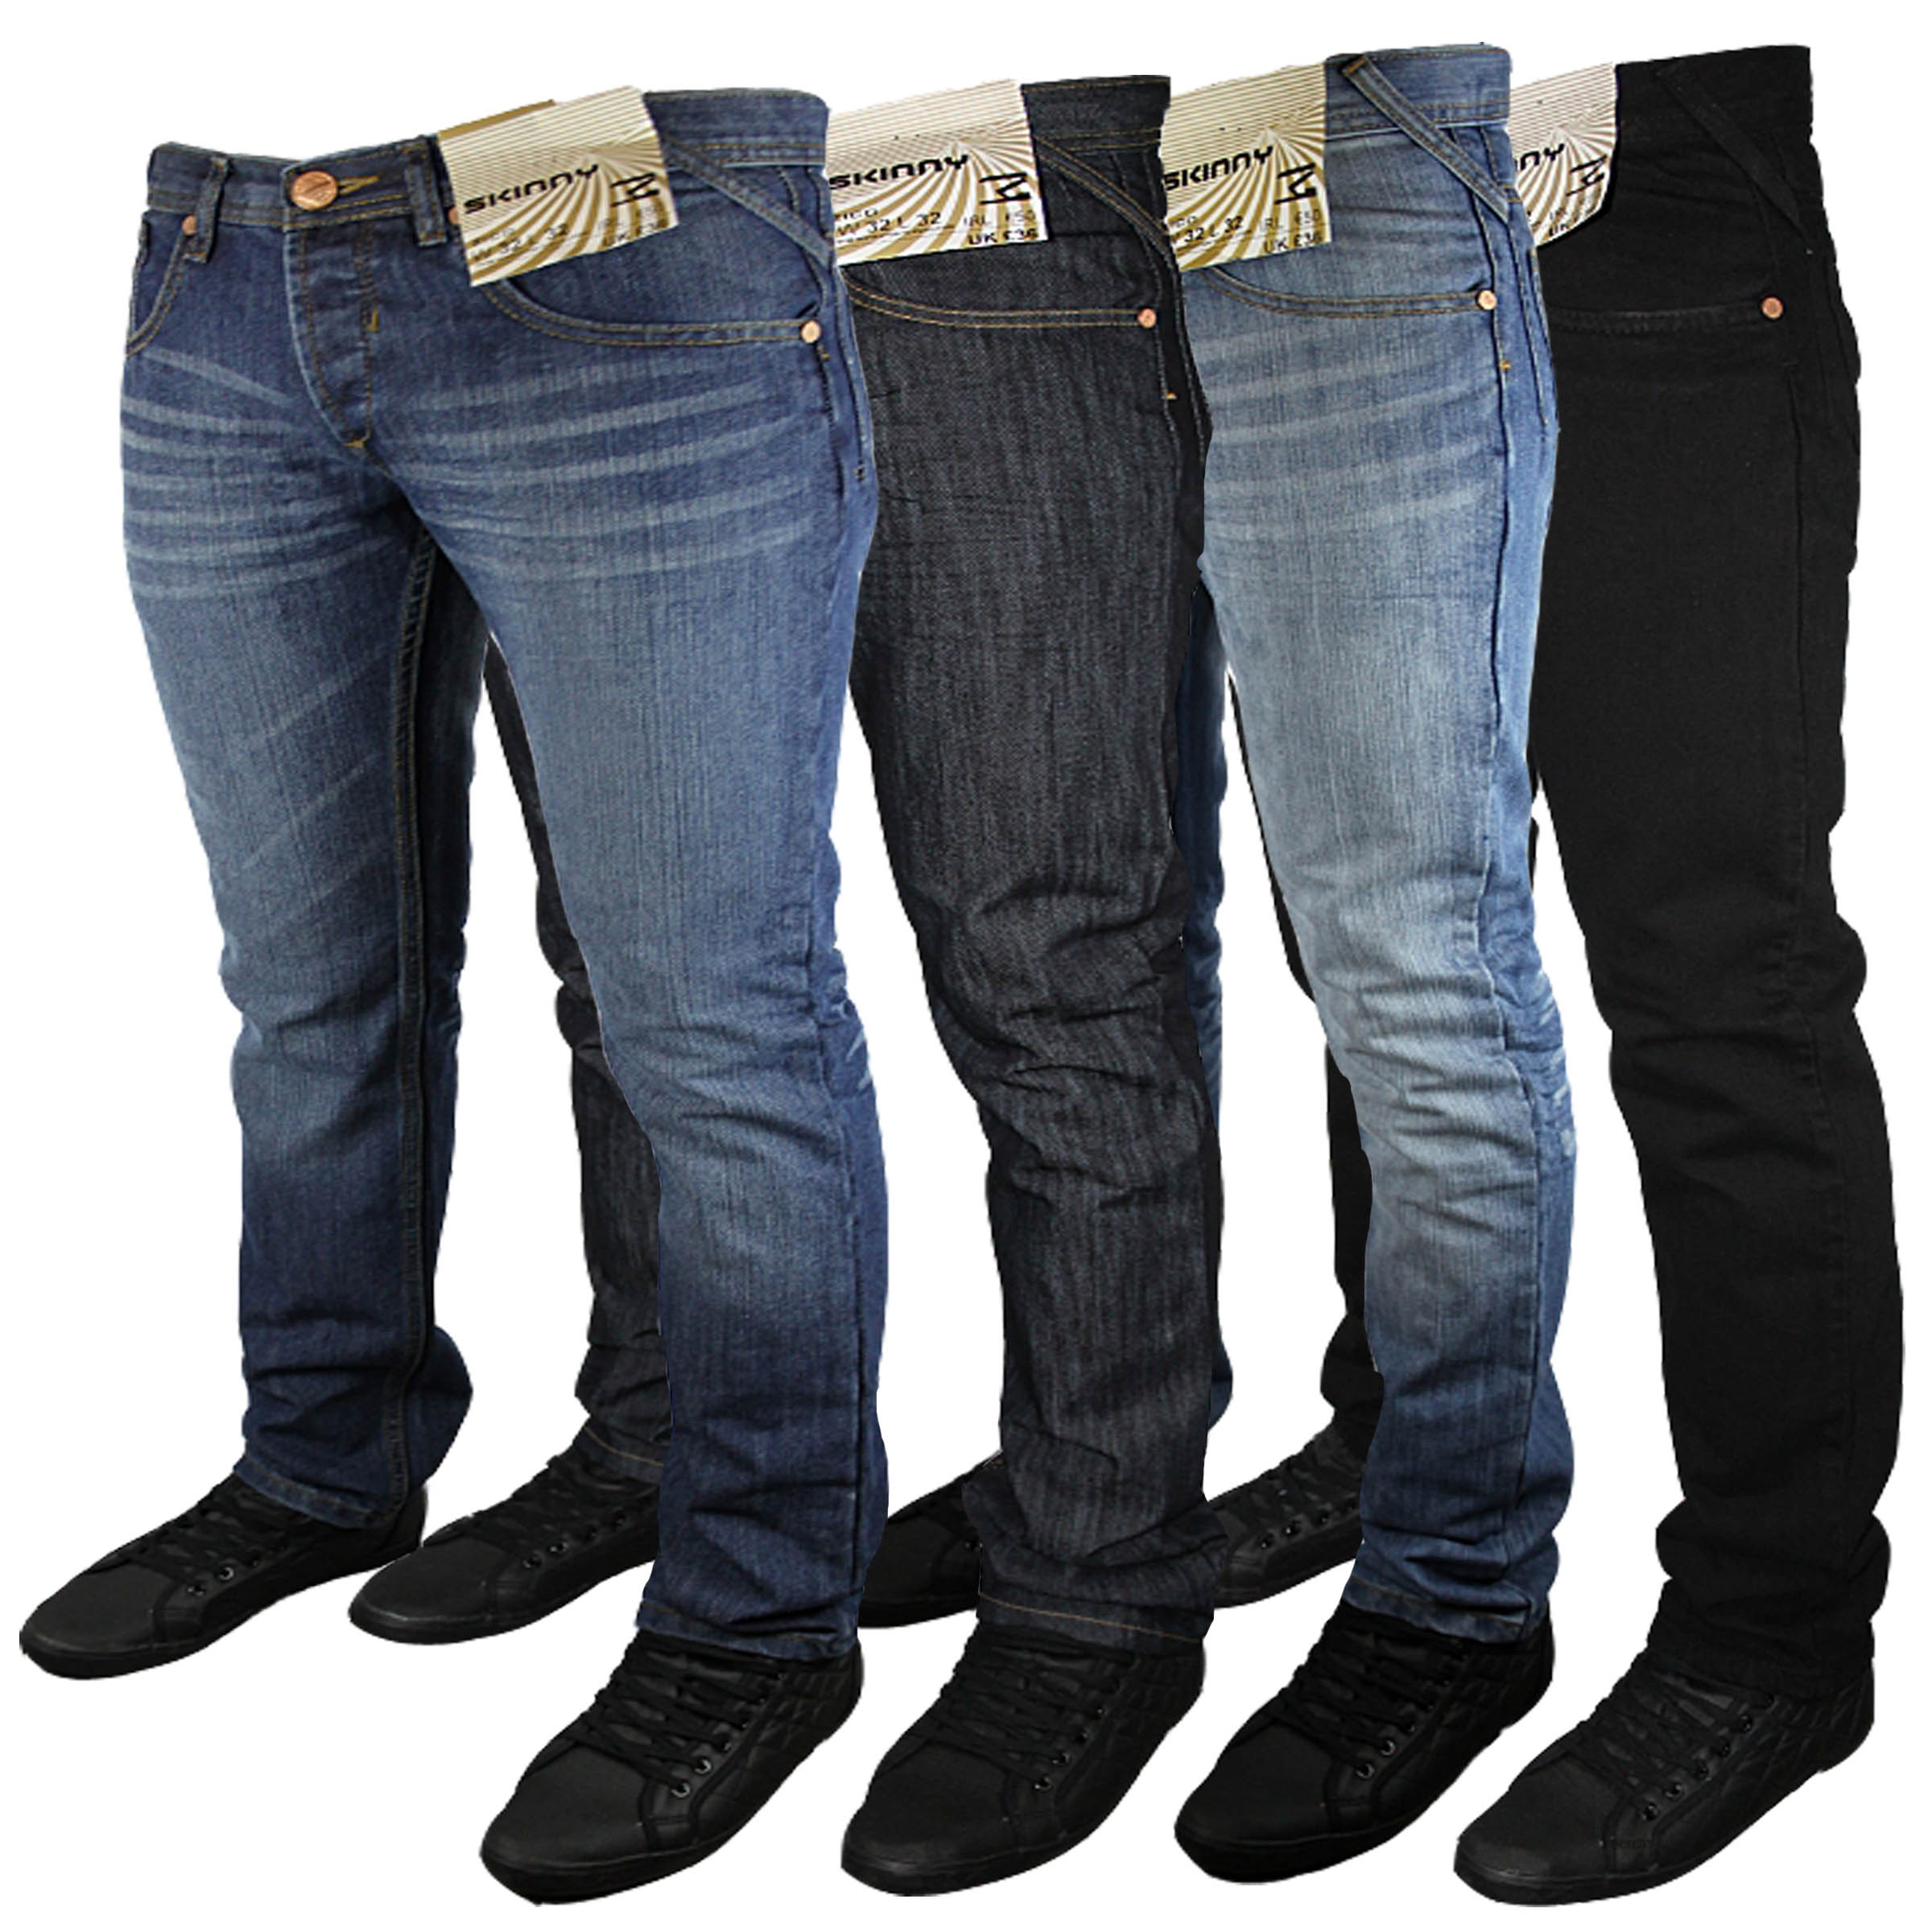 neu m nner zico skinny basic designer slim fit jeans alle taillen beingr en ebay. Black Bedroom Furniture Sets. Home Design Ideas